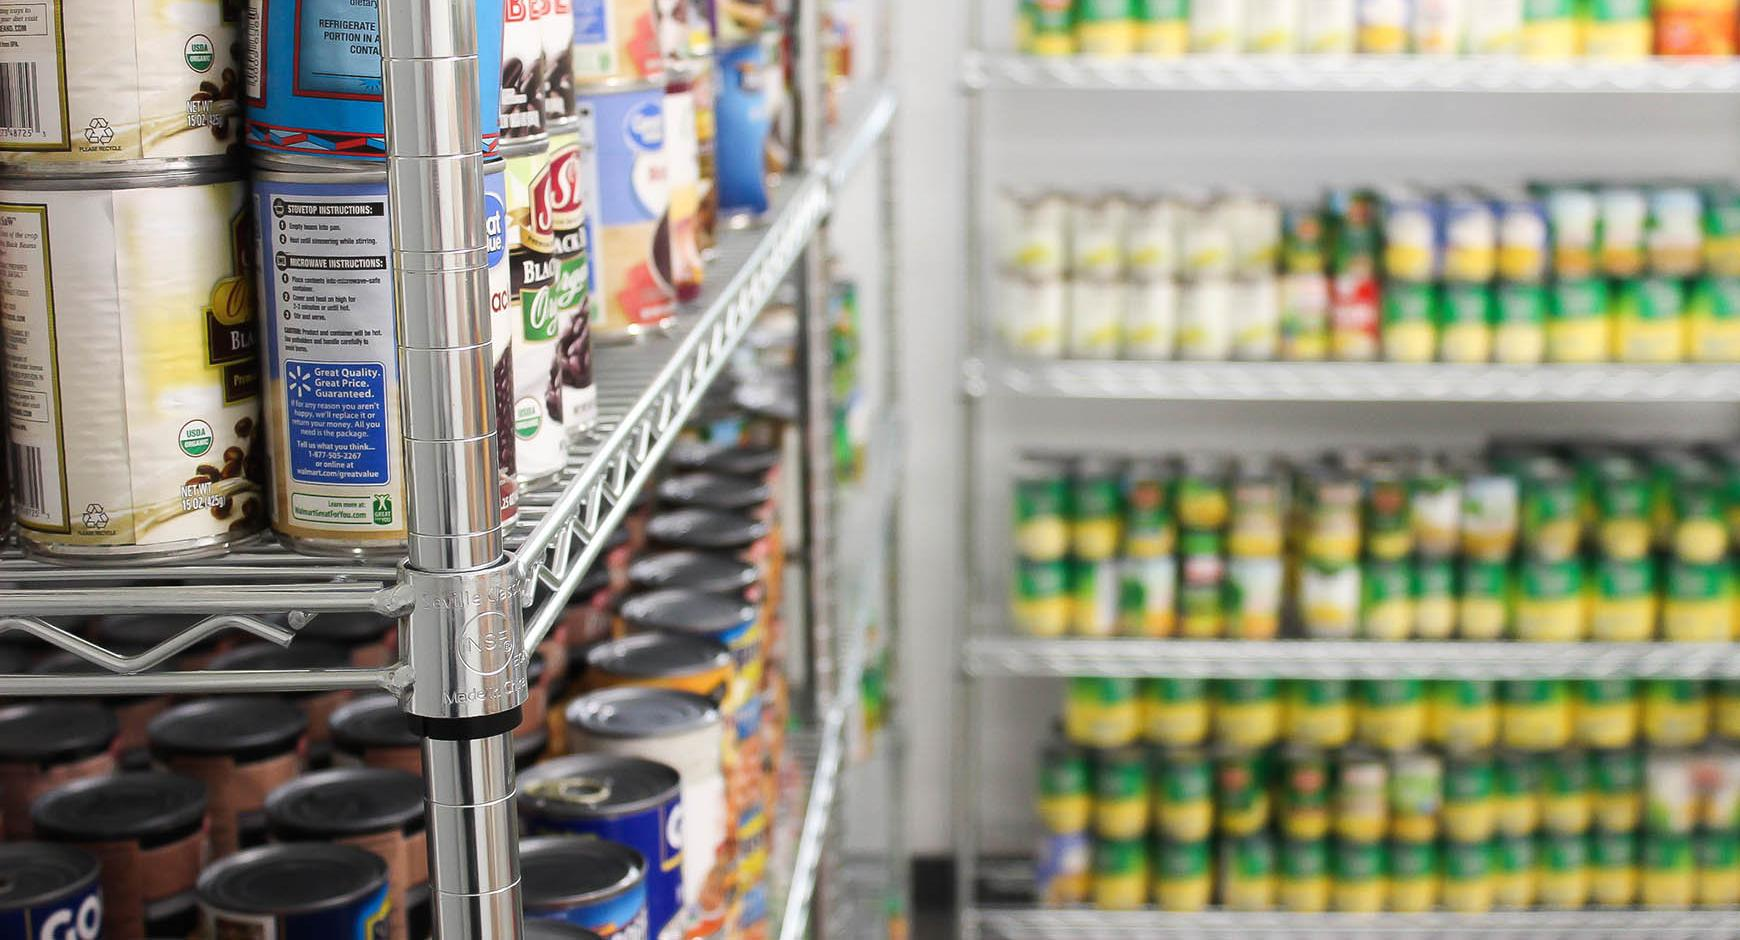 UT Outpost reopens to end food insecurity